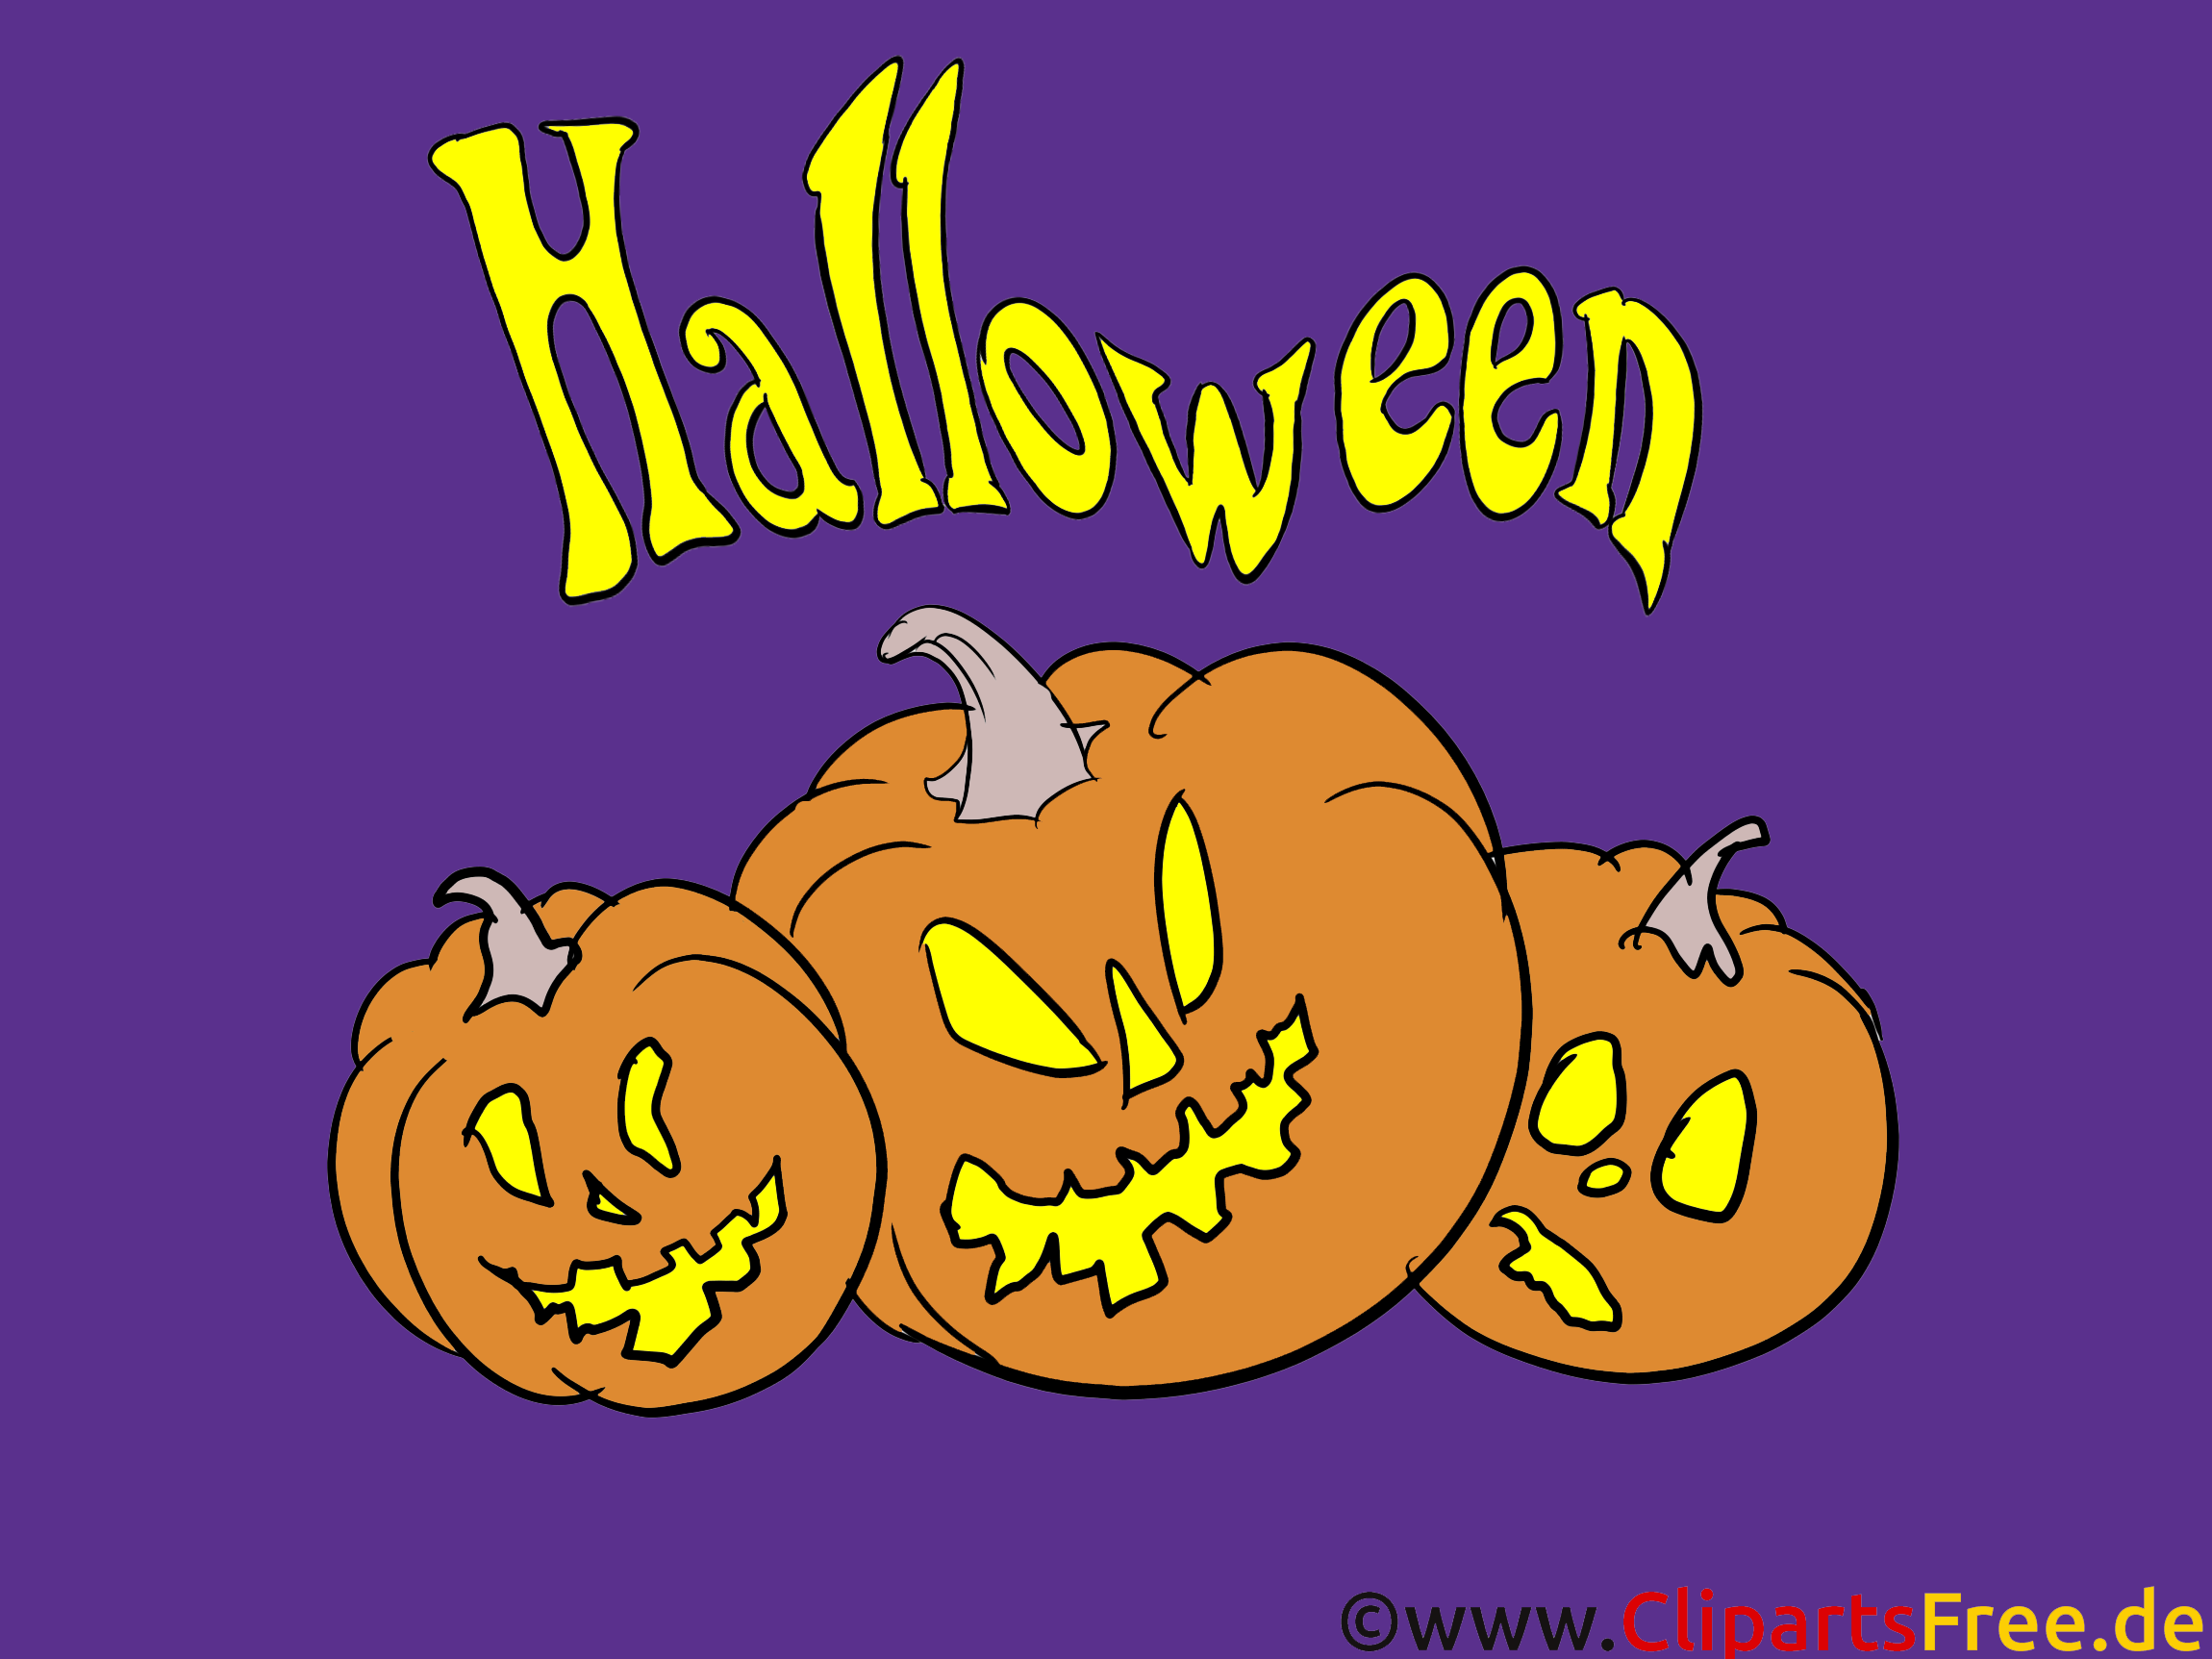 Halloween Party - Illustrationen, Bilder, Grafiken, Cliparts, Comics, Cartoons zu Halloween